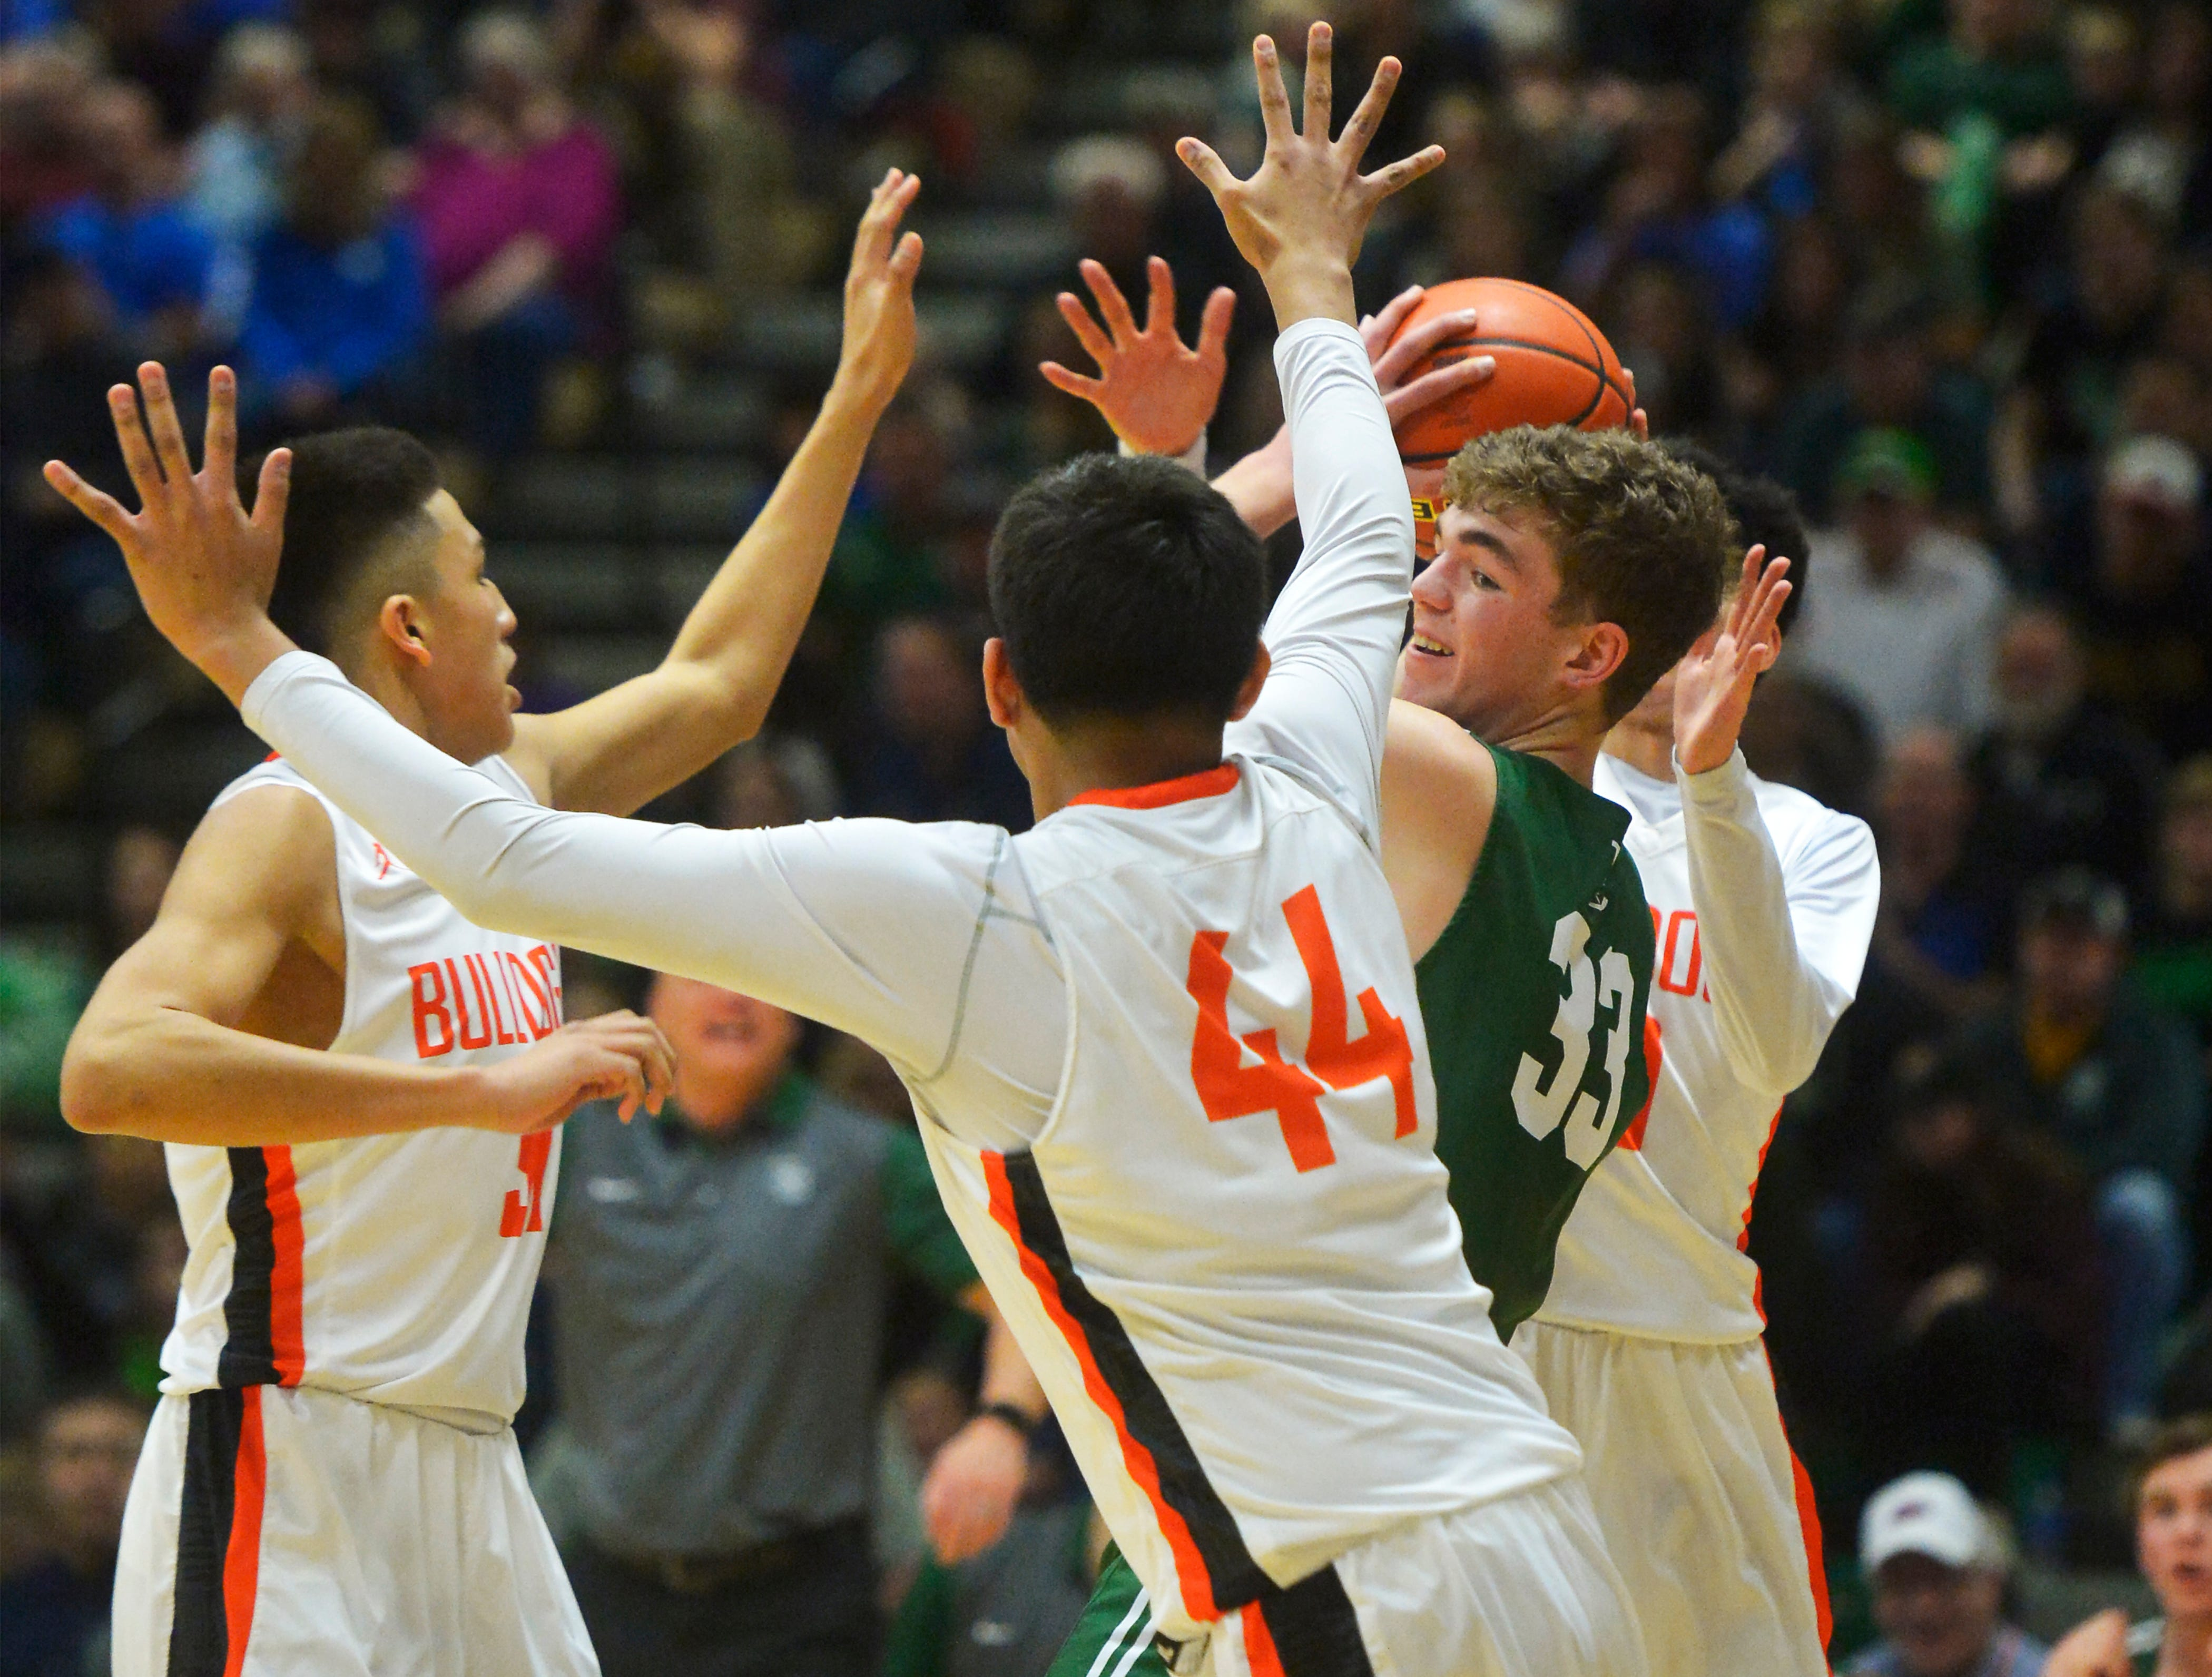 Billings Central's Sam Gray is surrounded by Hardin defenders in the title game of the State Class A Basketball Tournament in the Four Seasons Arena, Saturday.